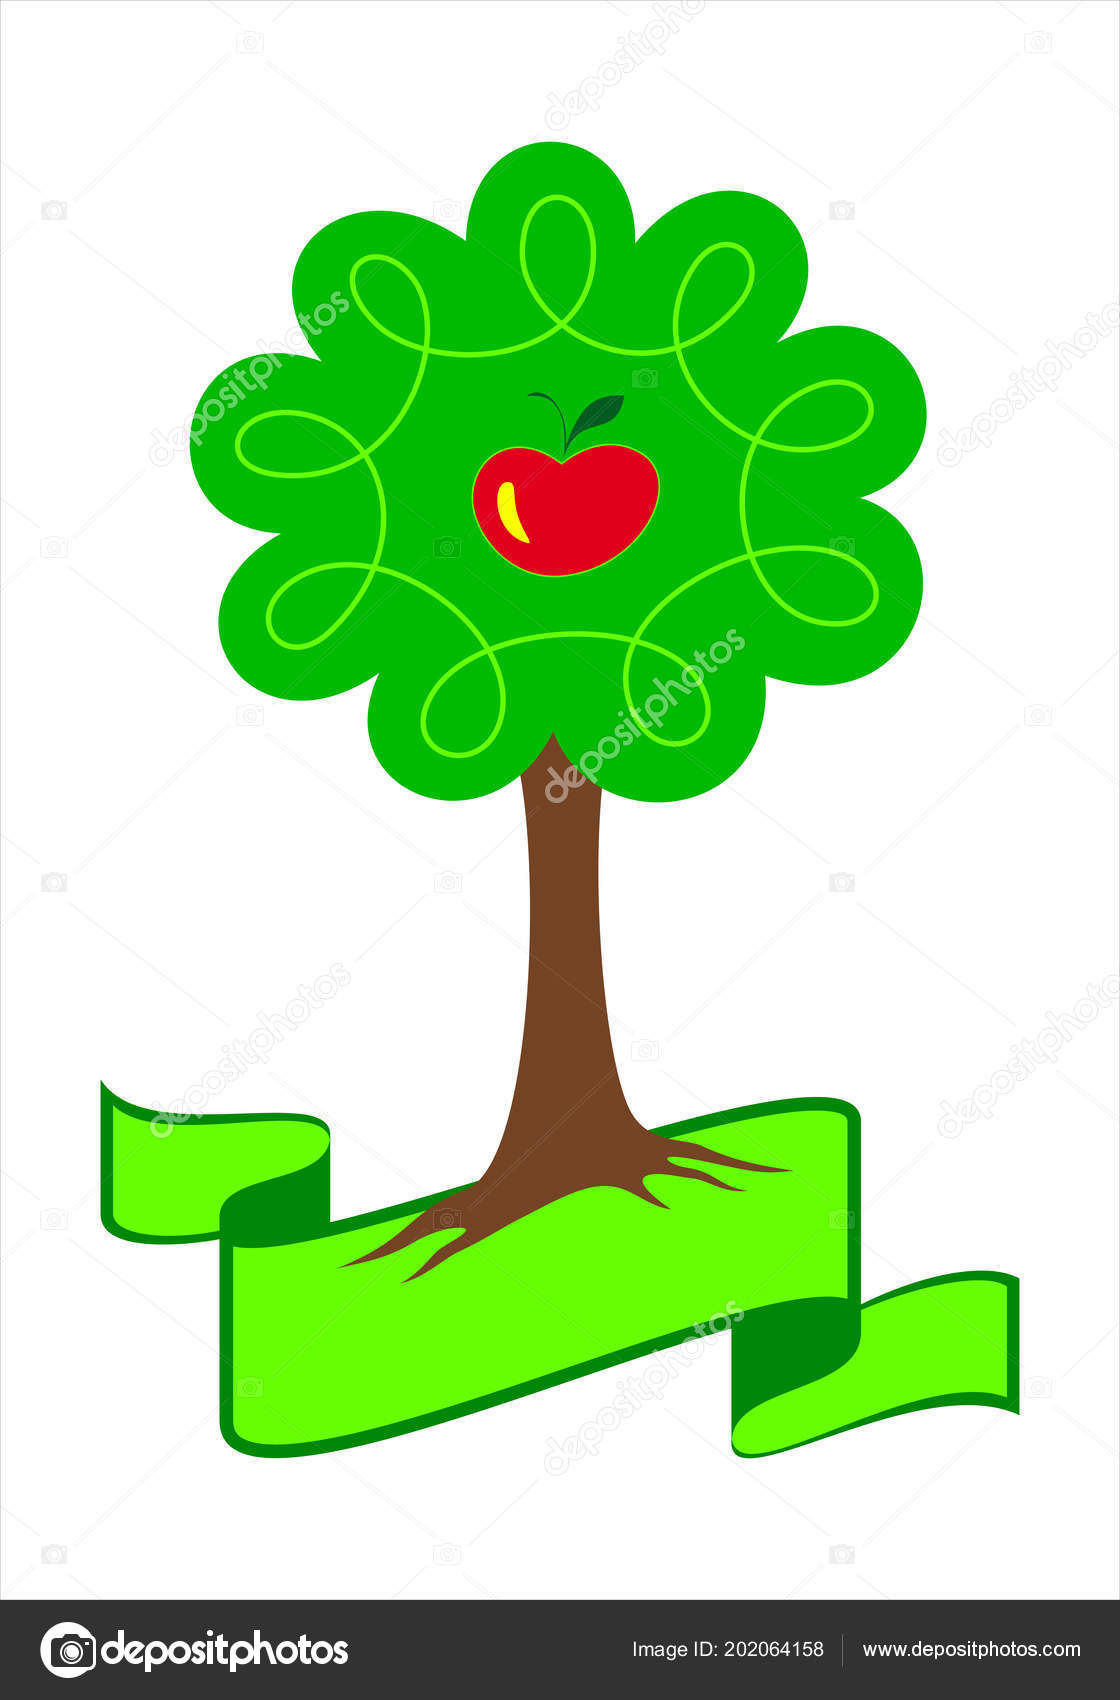 Stylized Apple Tree Logo Young Apple Tree Green Leafs Roots Vector Image By C Pod2011 Vector Stock 202064158